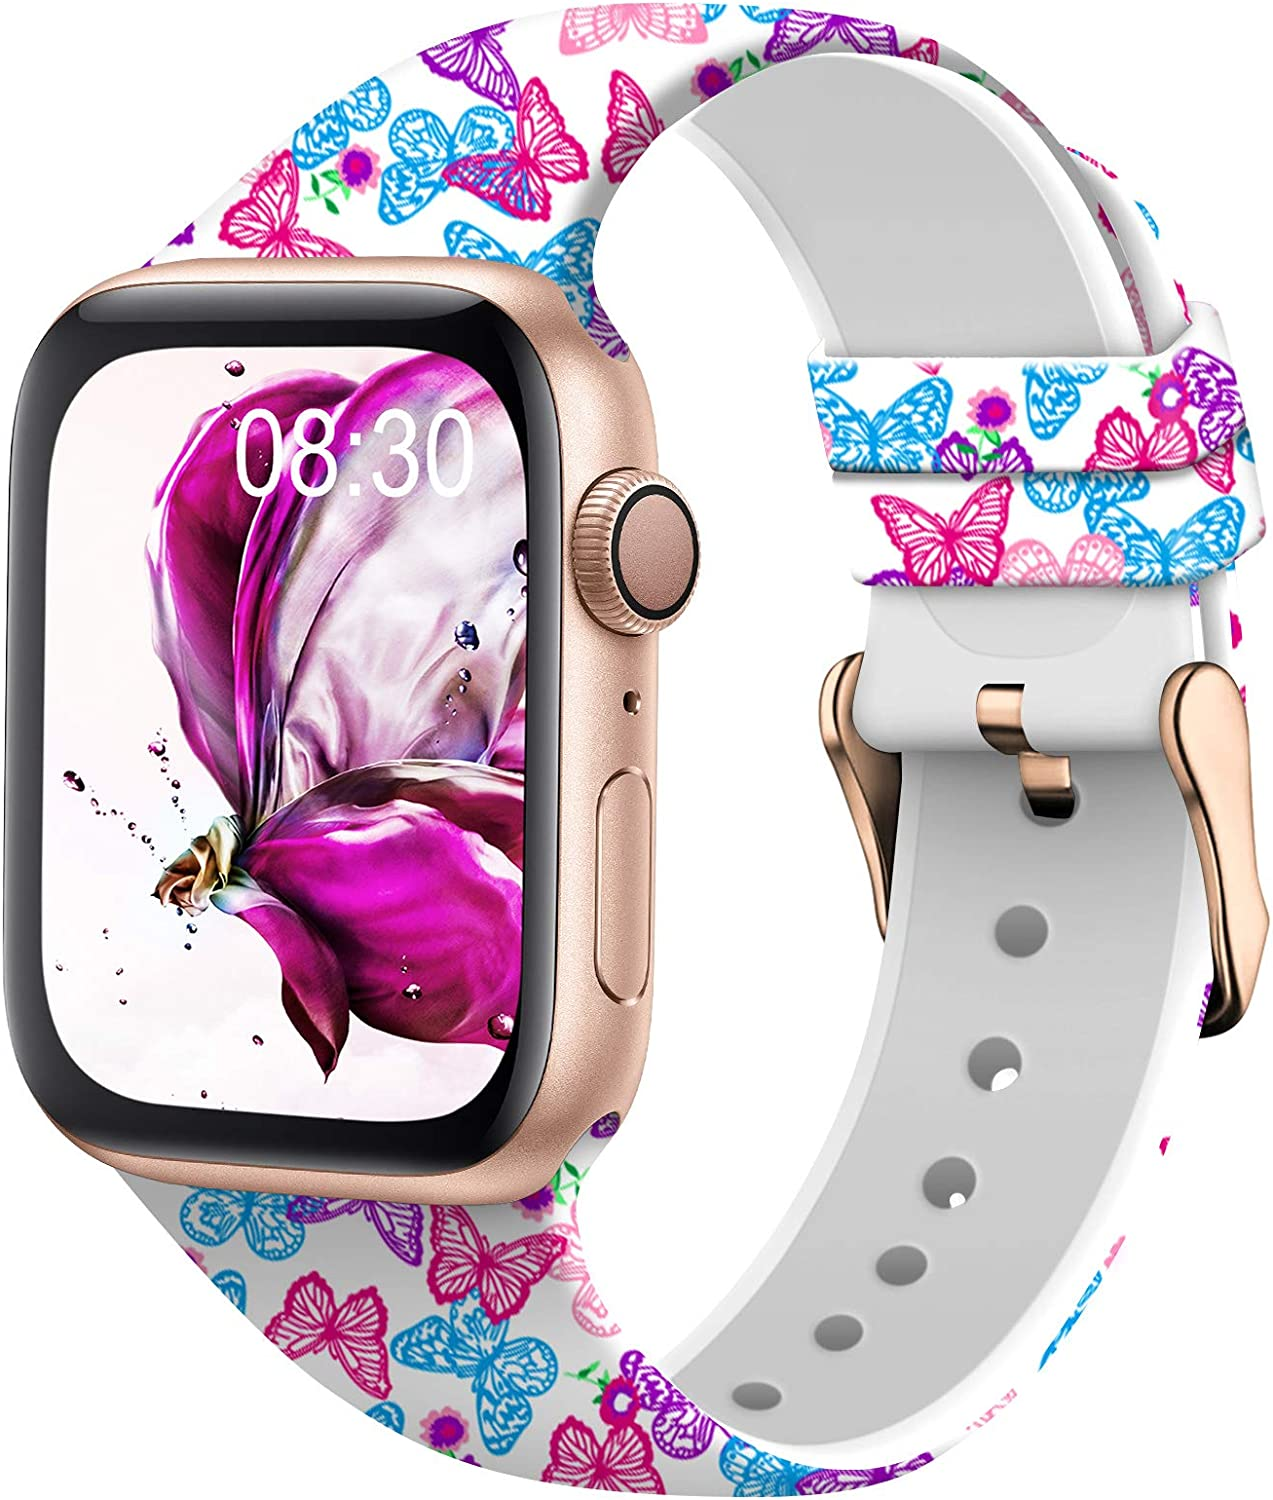 TSAAGAN Silicone Pattern Printed Band Compatible for Apple Watch Band 38mm 42mm 40mm 44mm, Floral Soft Sport Replacement Strap Wristband for iWatch Series 6/5/4/3/2/1 (Butterfly, 38mm/40mm)